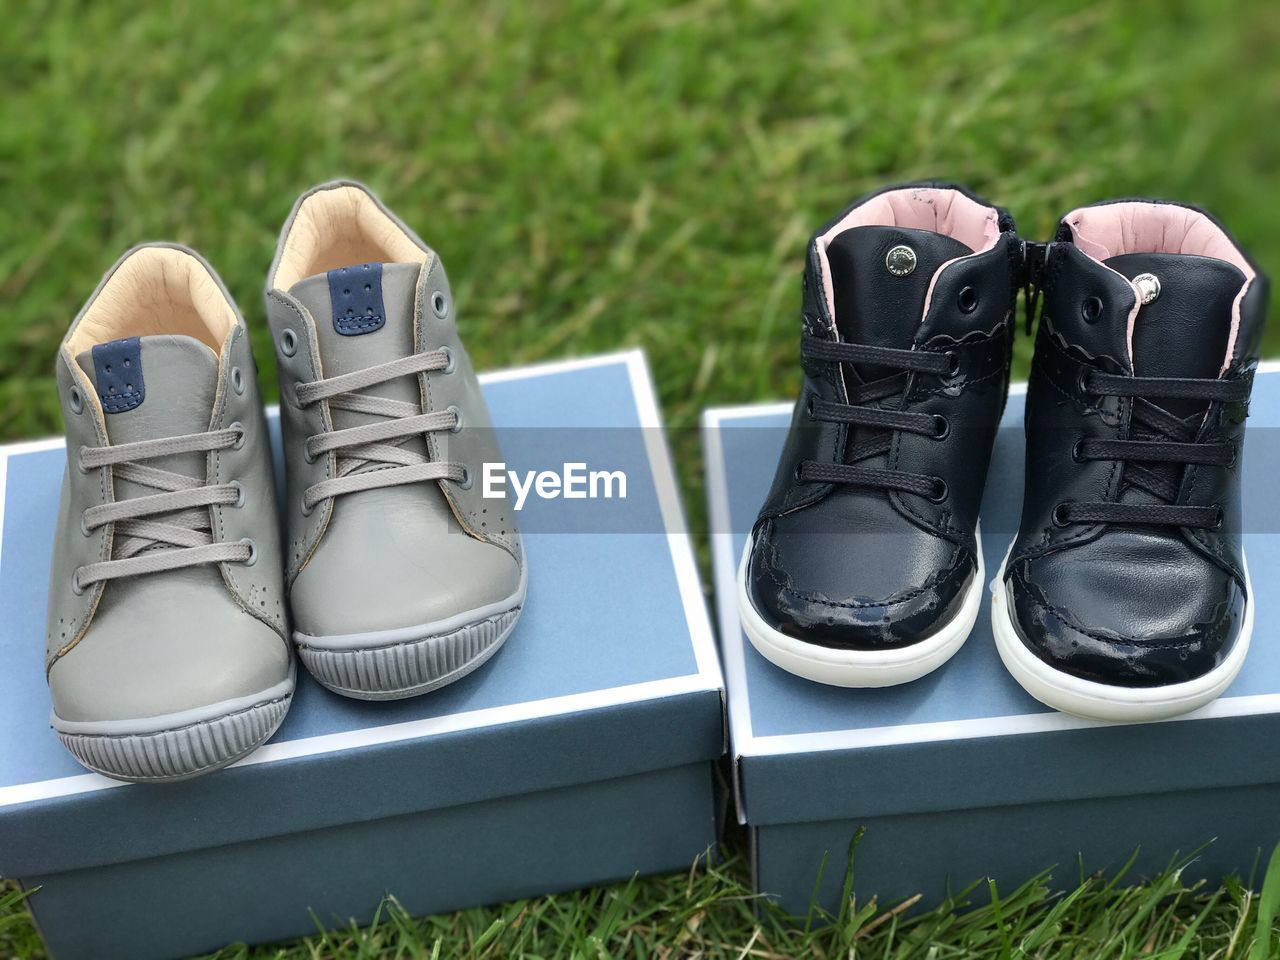 shoe, grass, pair, plant, nature, day, no people, absence, field, compatibility, outdoors, green color, side by side, growth, land, still life, canvas shoe, focus on foreground, close-up, shoelace, personal accessory